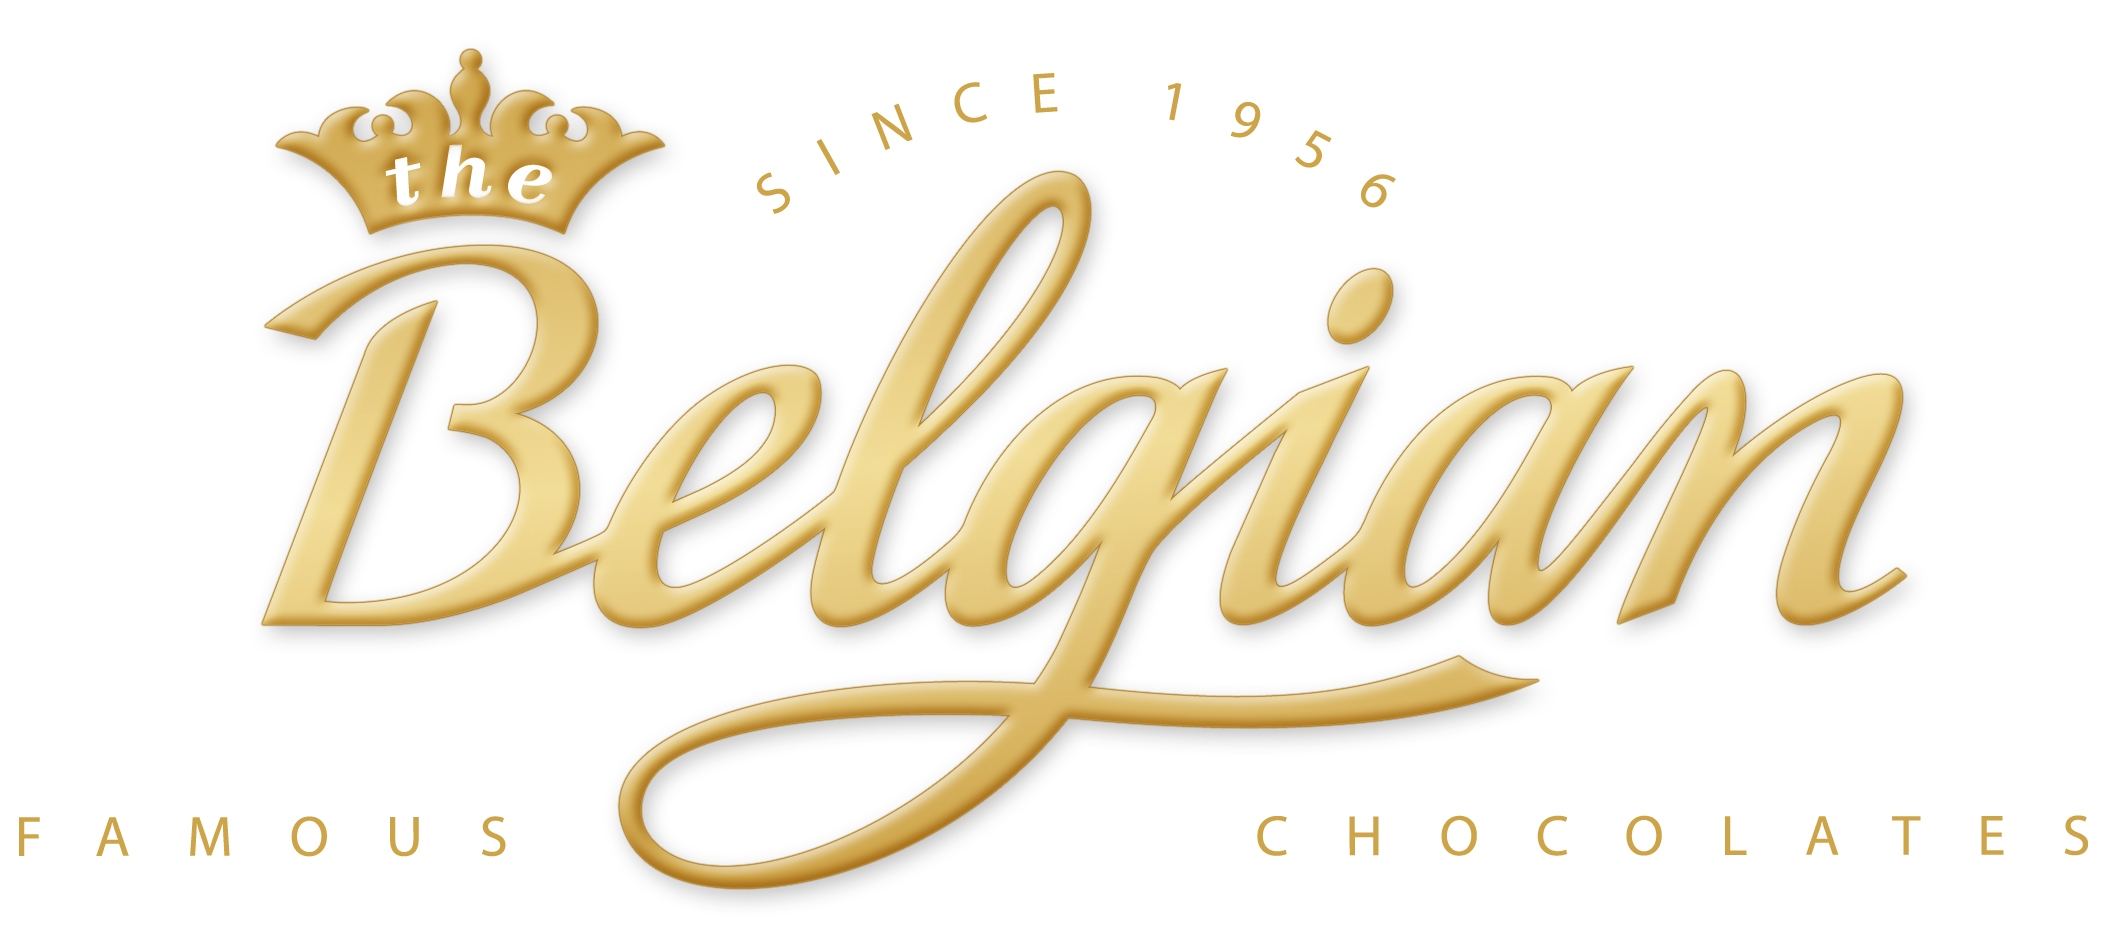 The Belgian Chocolate Group NV